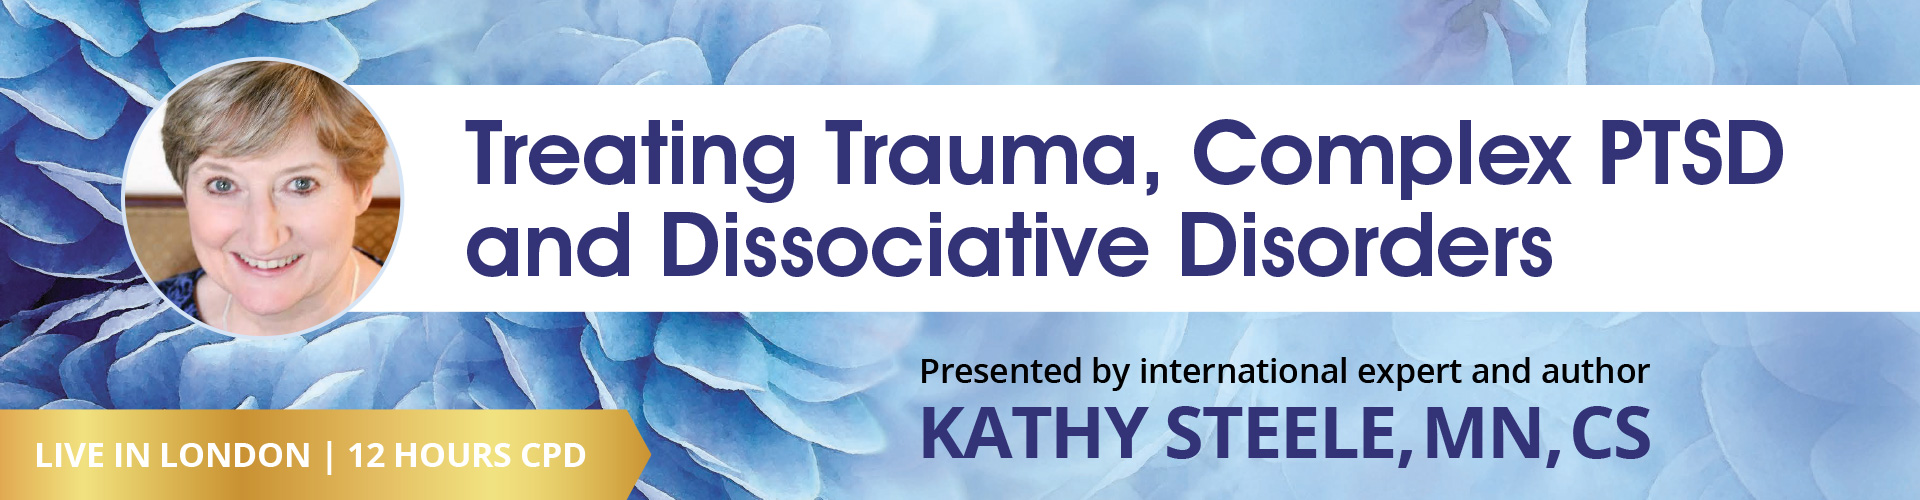 Treating Trauma, Complex PTSD and Dissociative Disorders